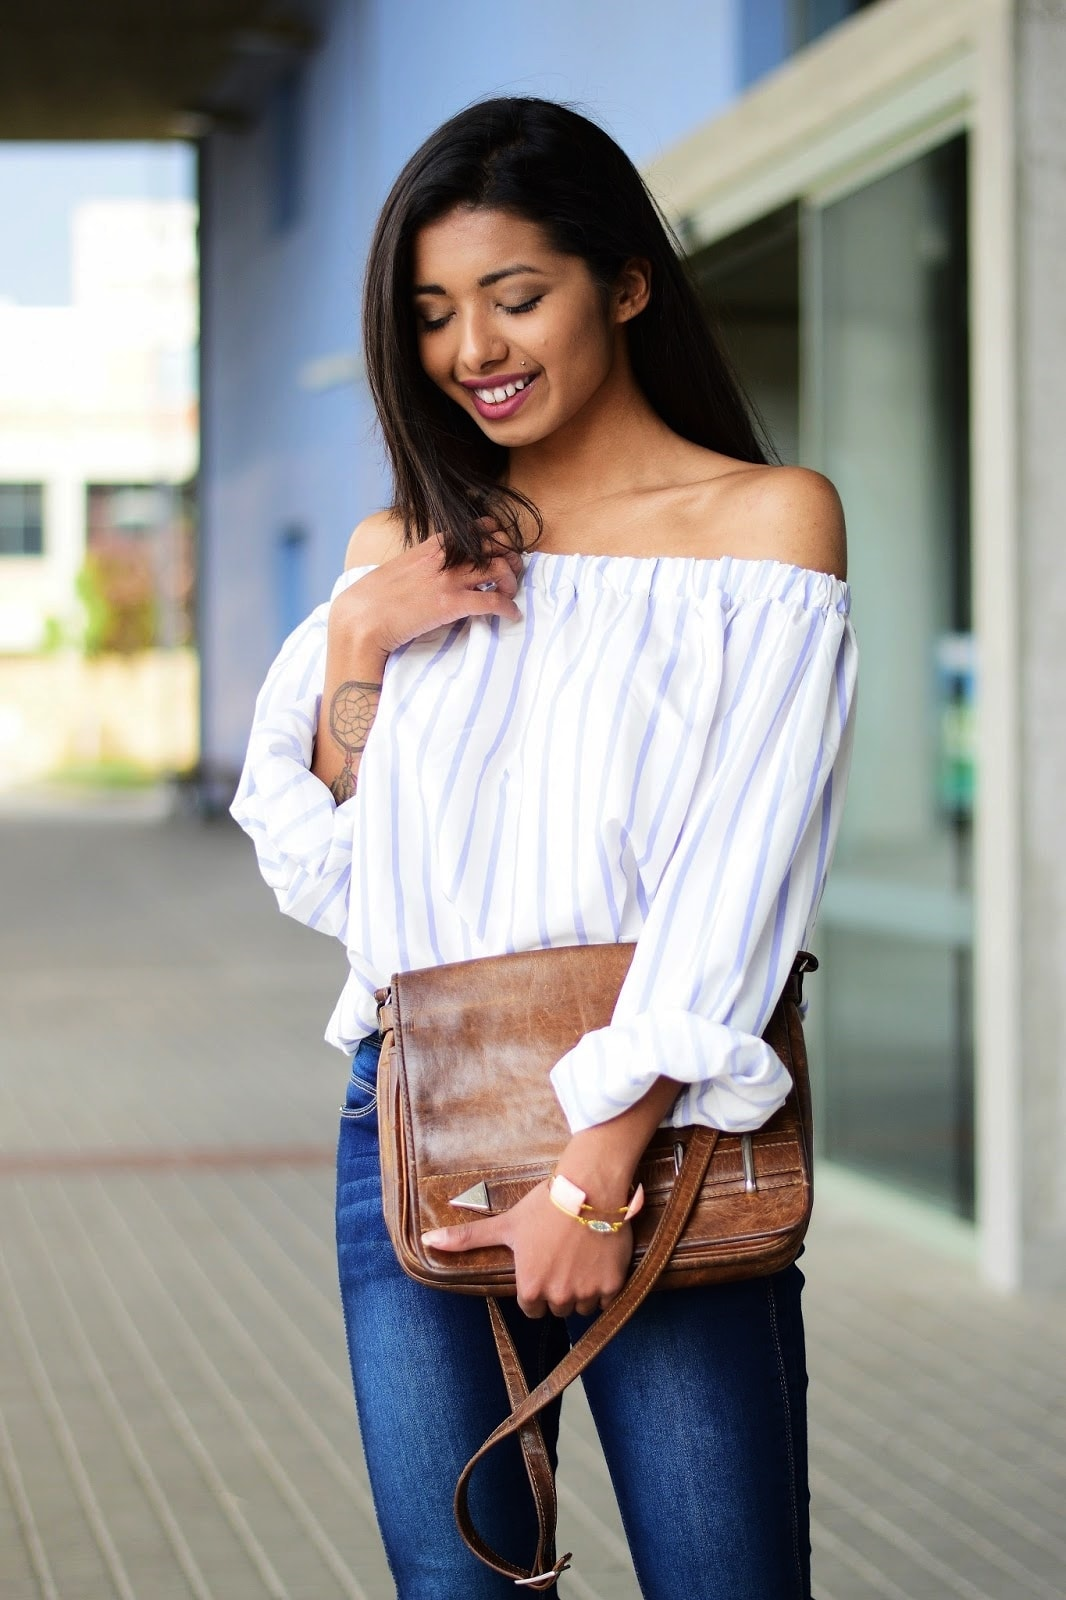 off-shoulder blouse outfit idea